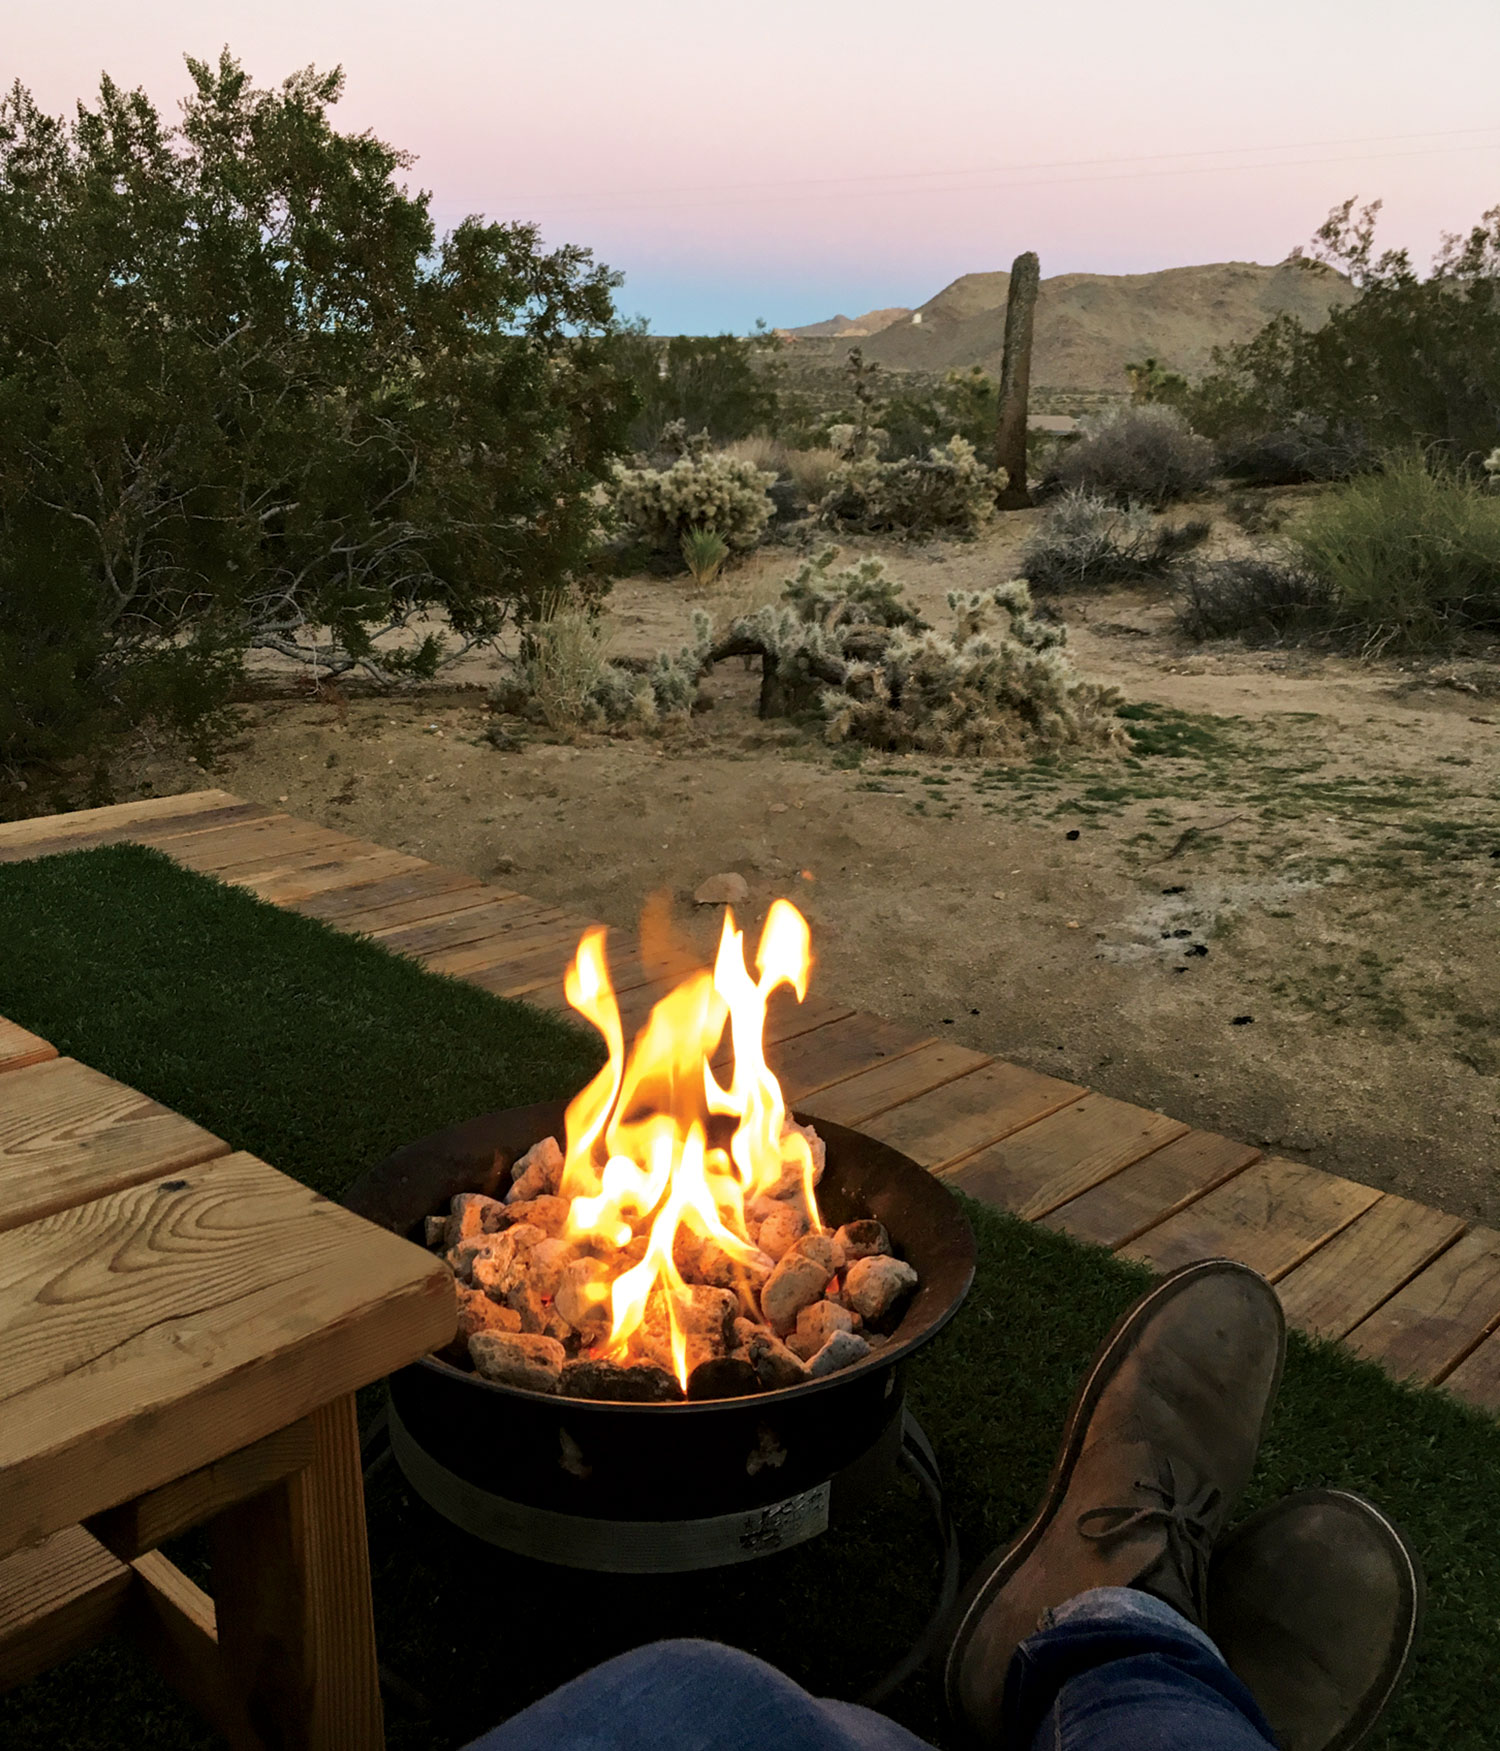 photo by Leah Lemoine; Watching the sunset on the Airbnb deck in Joshua Tree